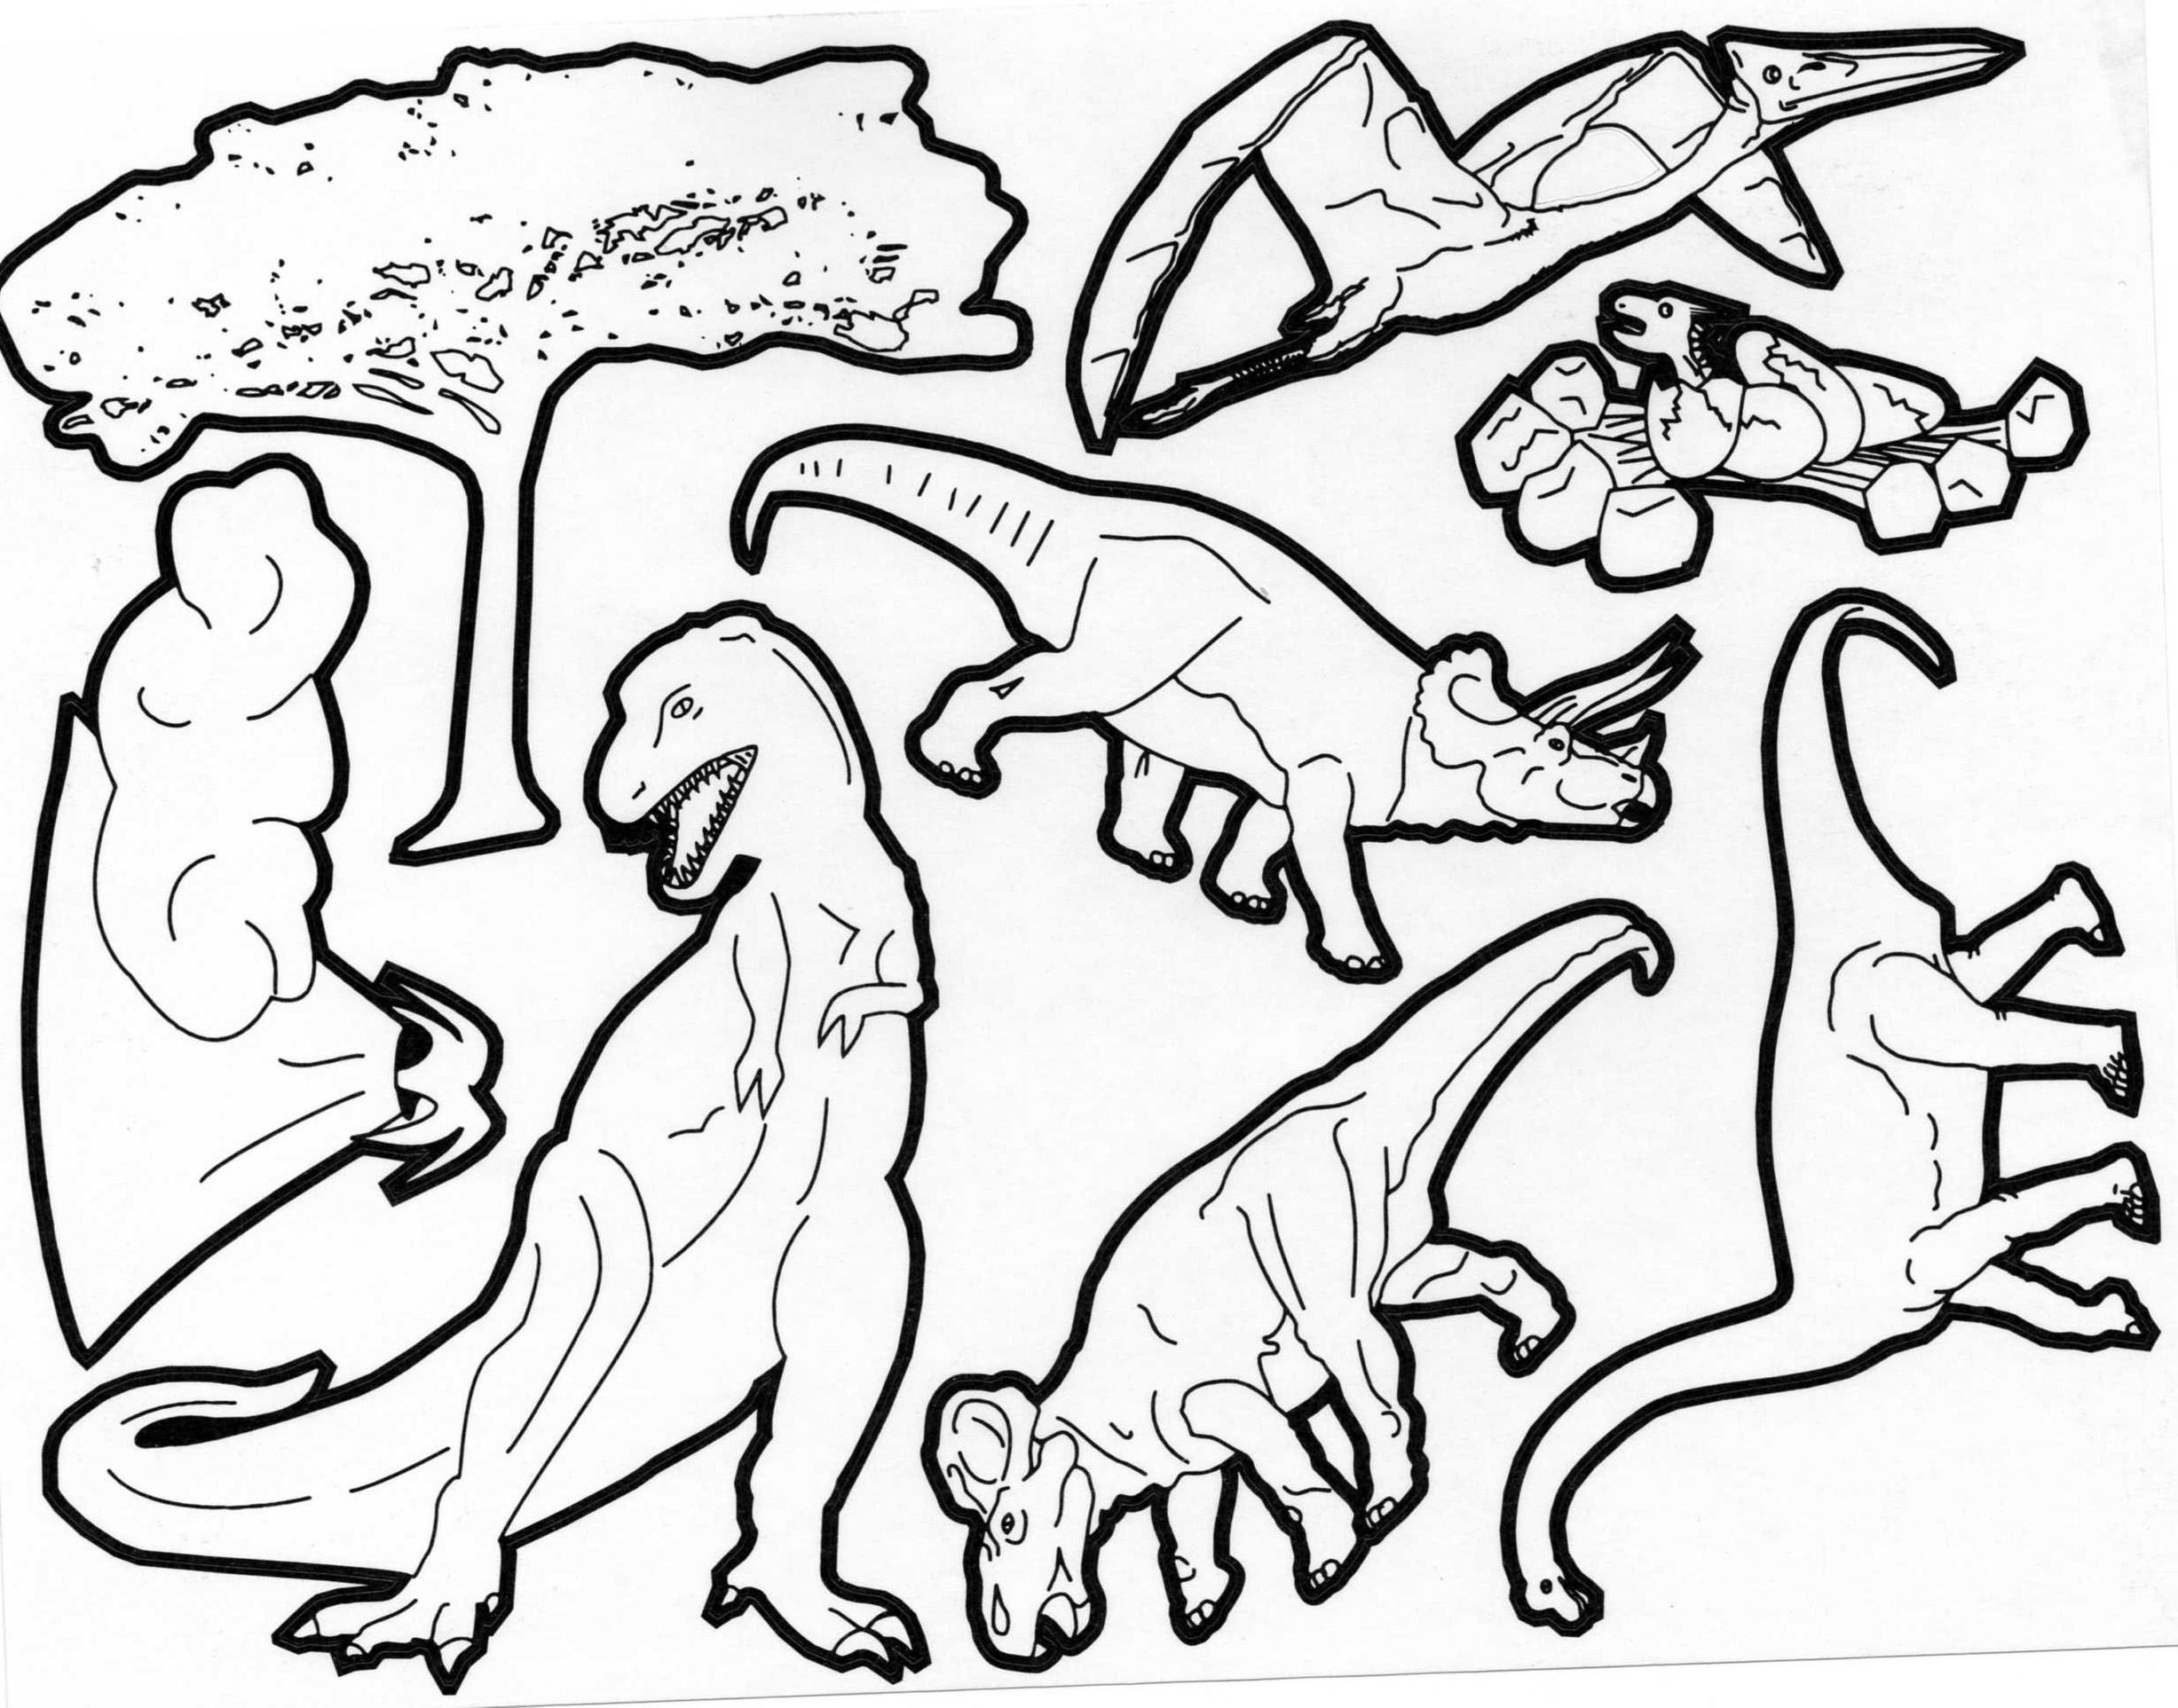 Funny Dinosaurs coloring page : Dinosaur Types of Dinos